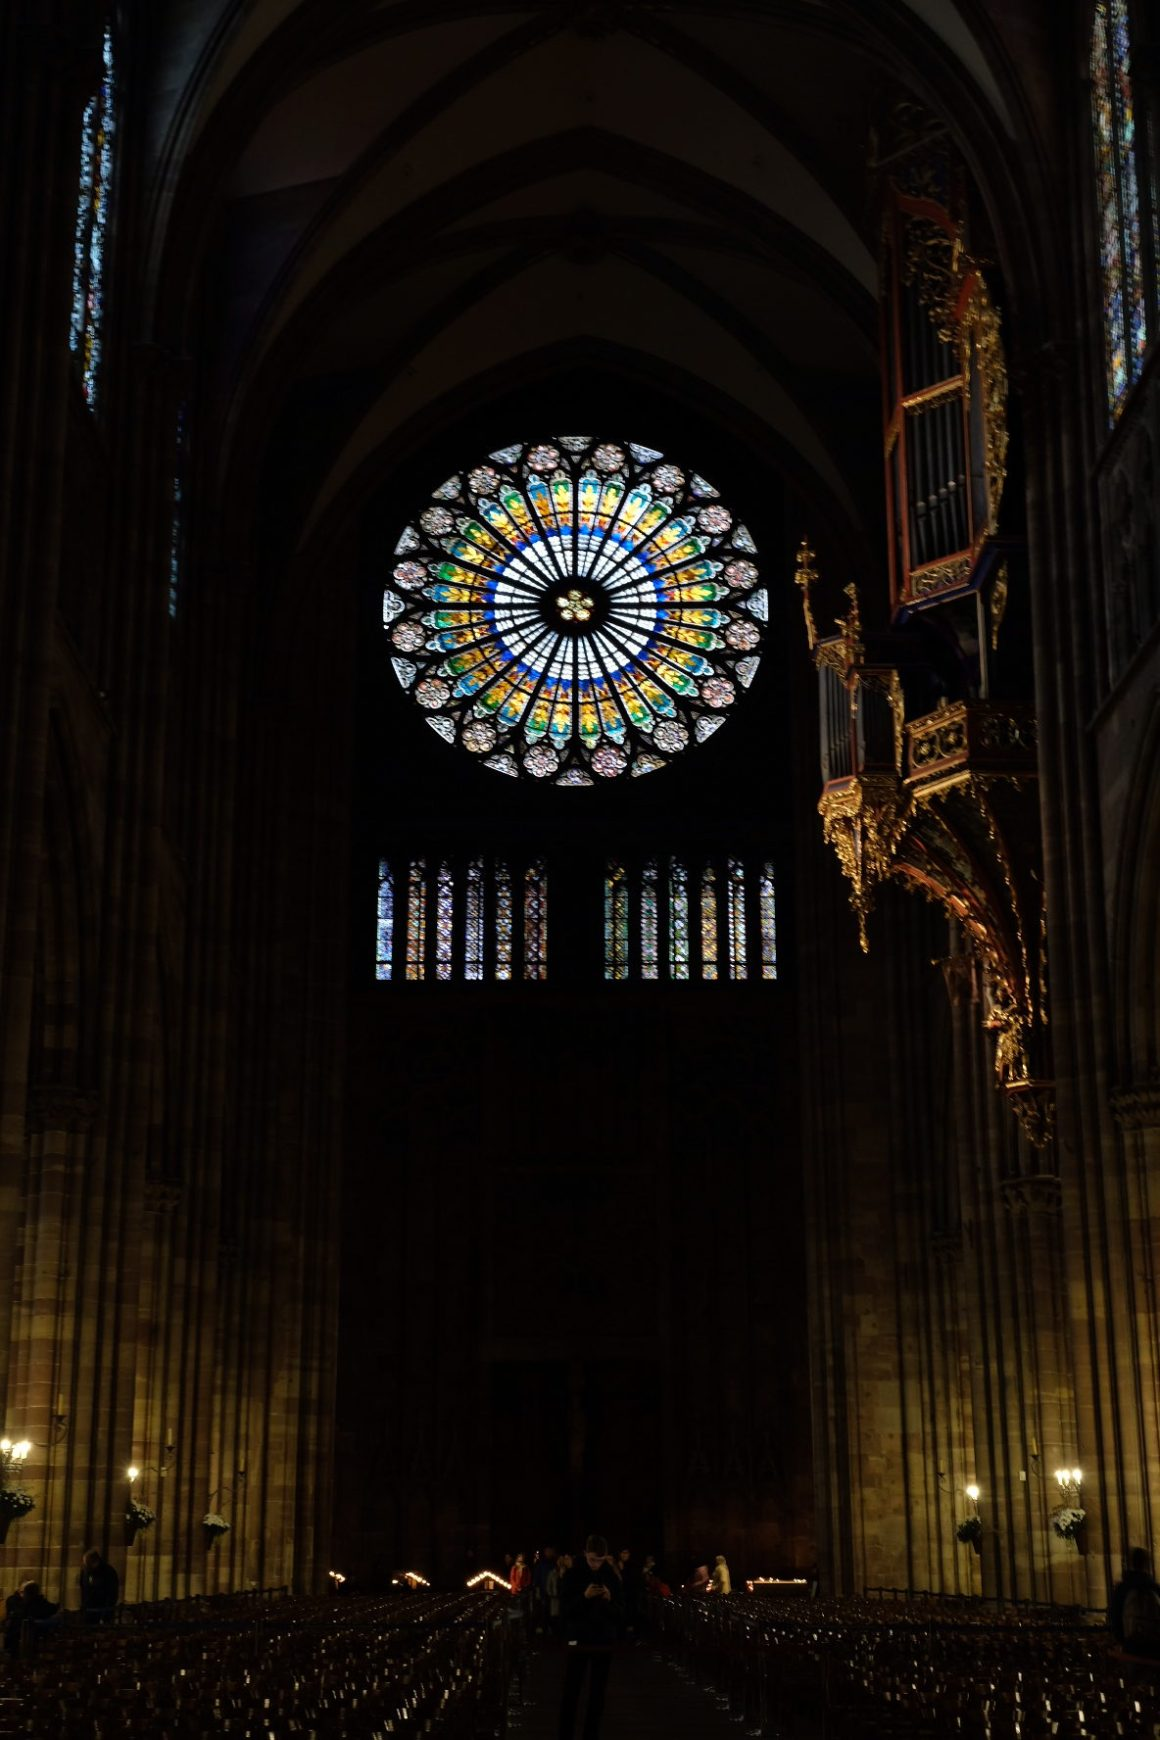 Strasbourg Travel, Must See & Do, Must Eat in 28 Hours - Stained Glass and Pipe Organ in Cathédrale Notre Dame de Strasbourg